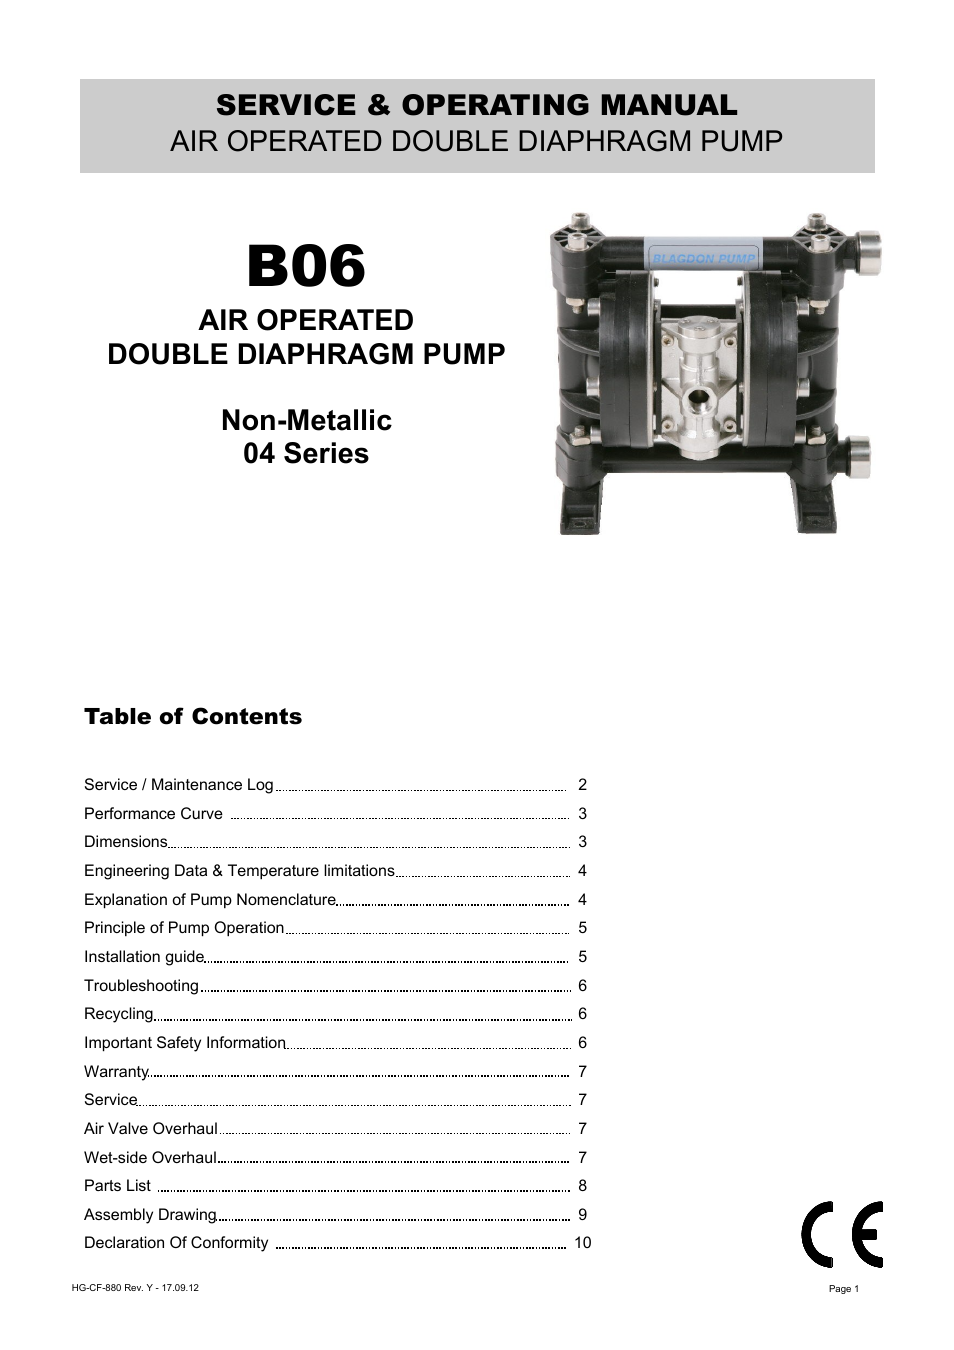 Blagdon pump b06 non metallic user manual 10 pages ccuart Images